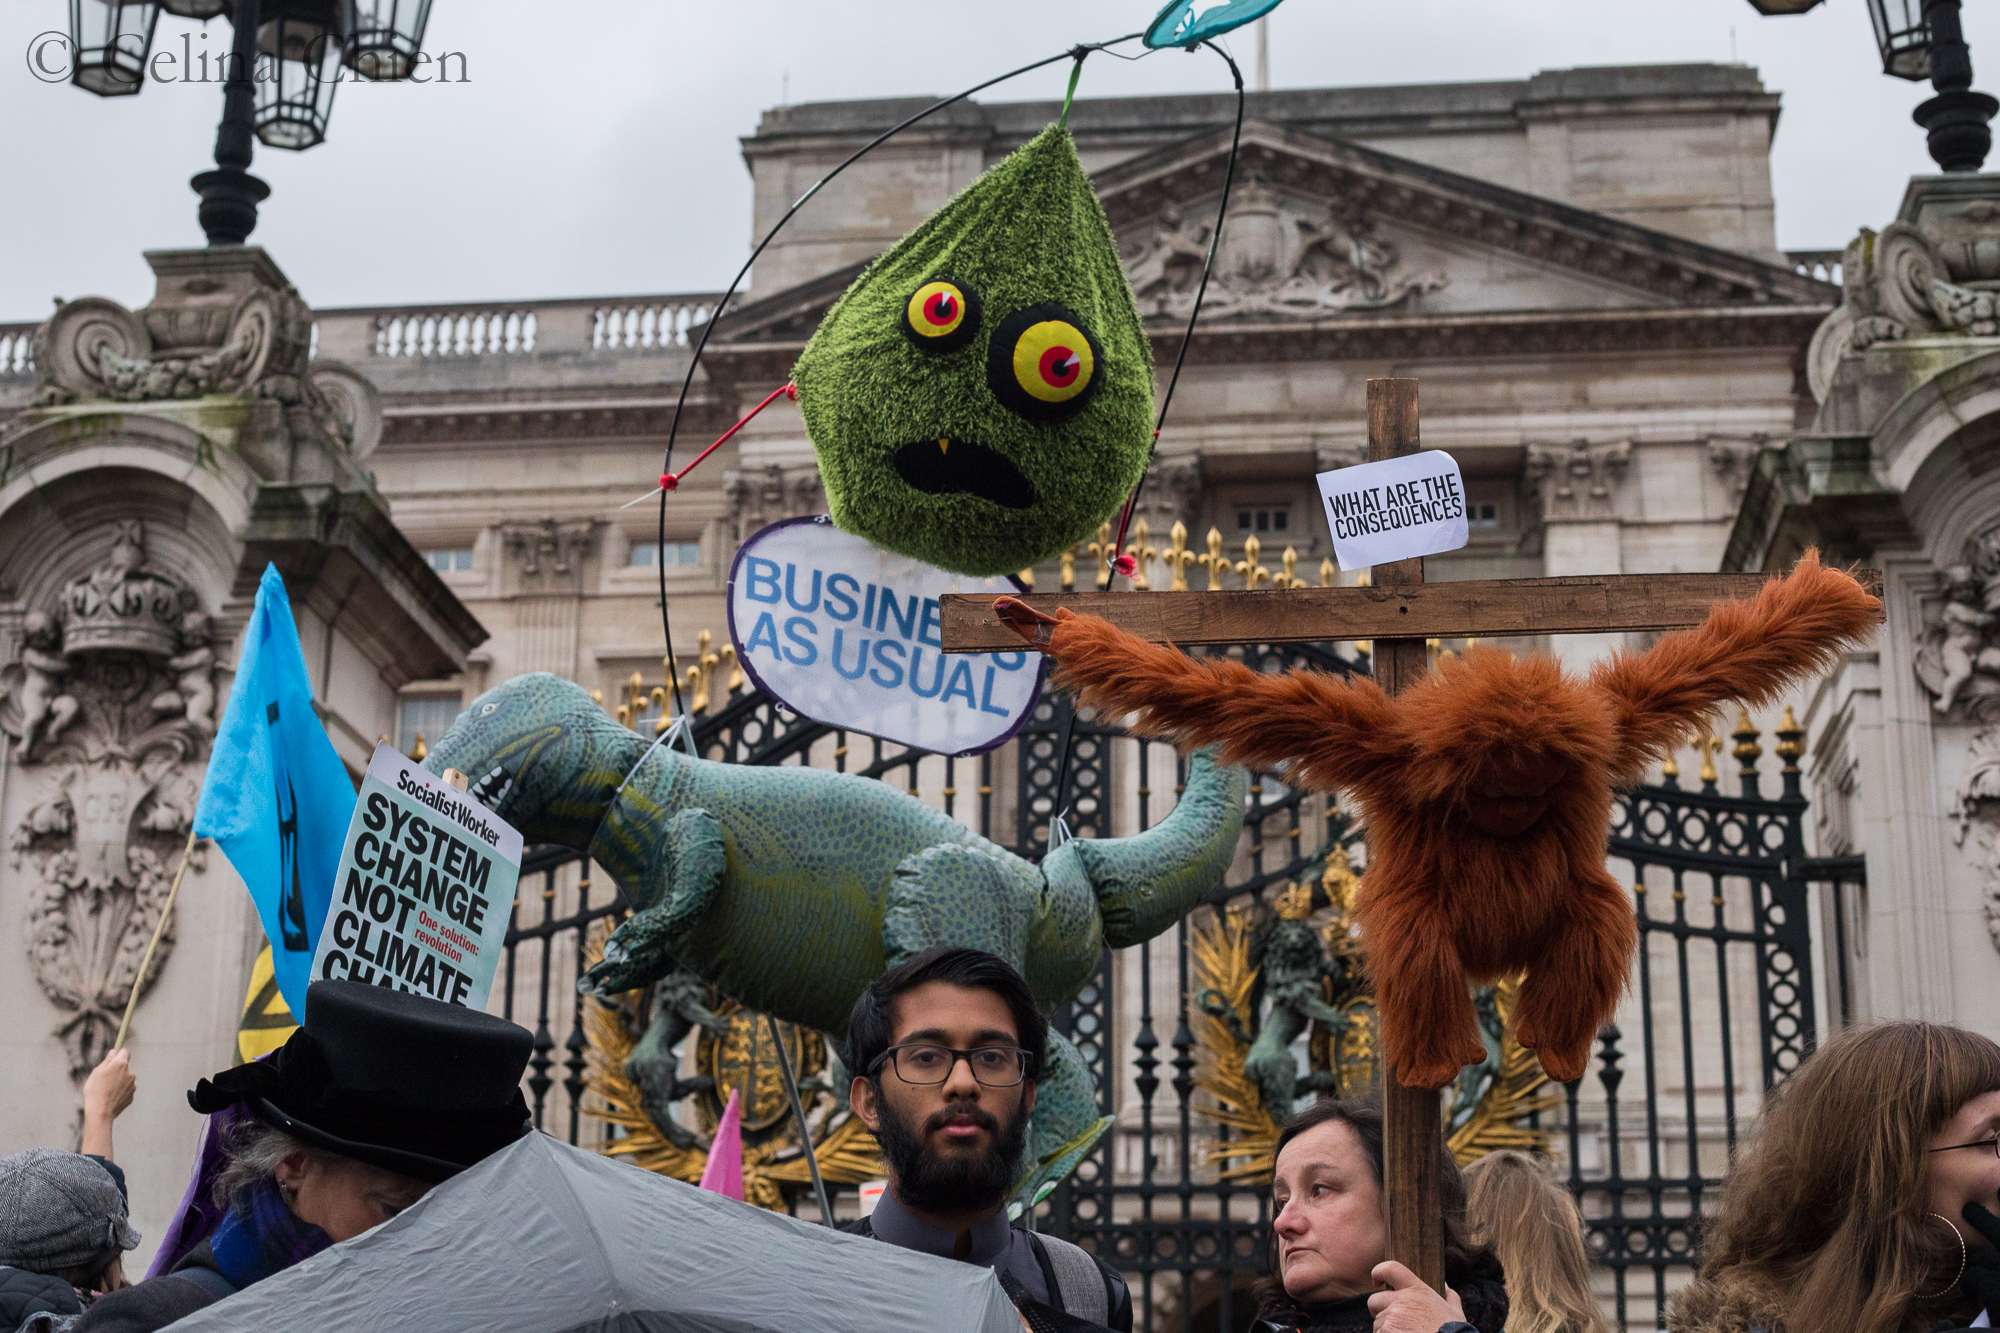 LONDON18-EXTINCTION REBELLION-0660.jpg